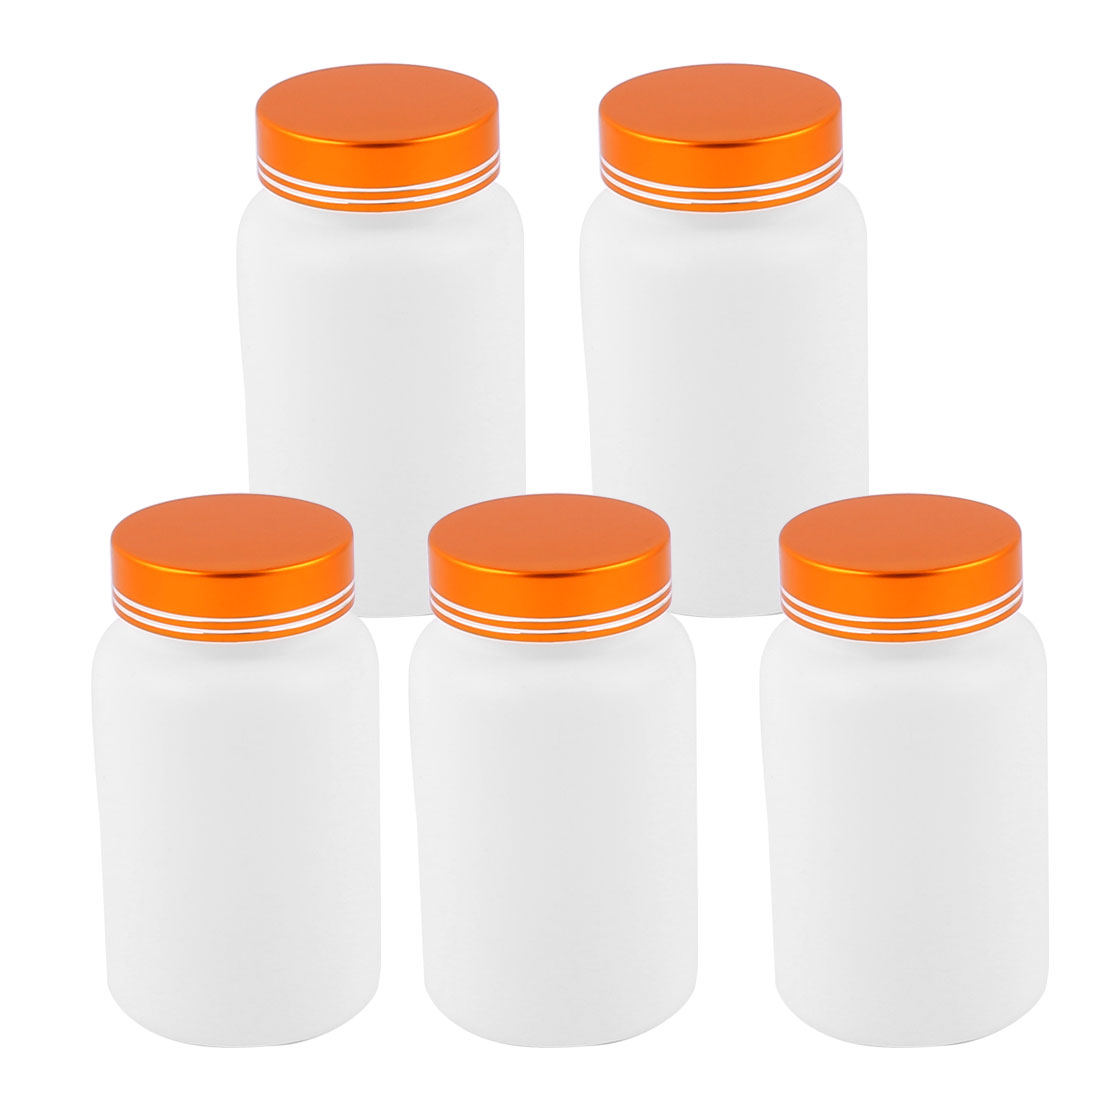 5Pcs 200cc Empty Plastic Bottles Healthy Products Bottles Glod Tone Lid